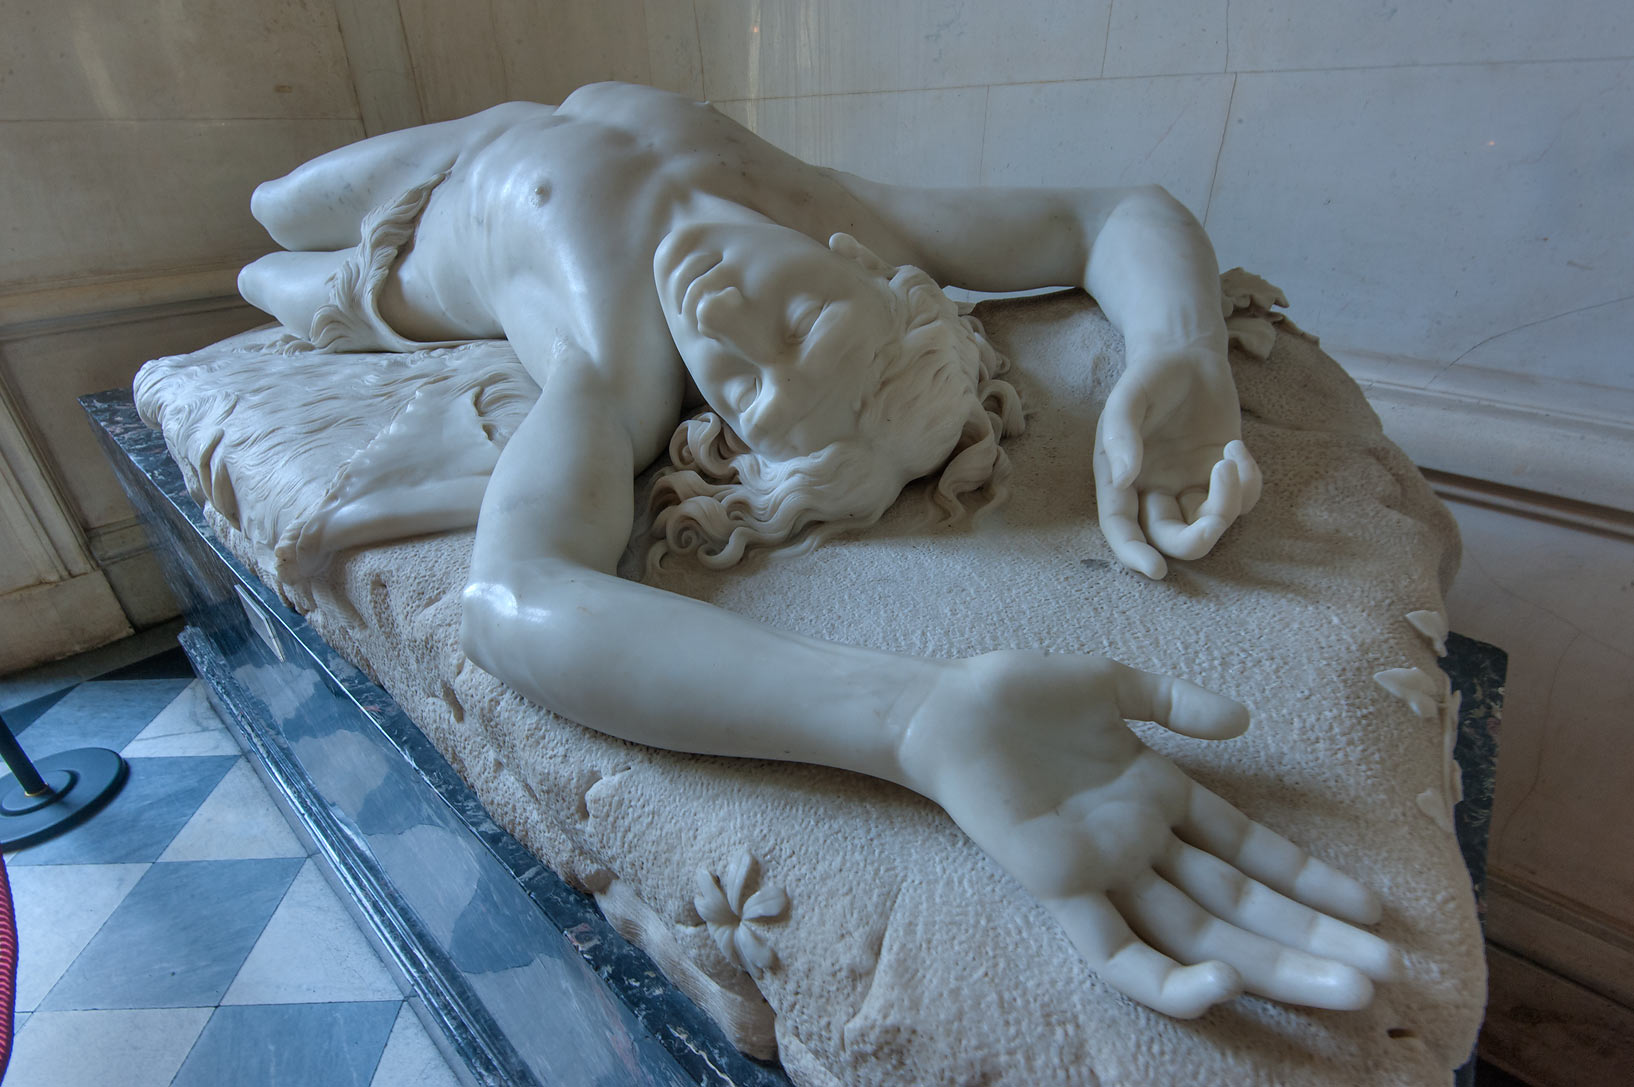 Sculpture of Avel by Giovanni Dupre above Main...Museum. St.Petersburg, Russia